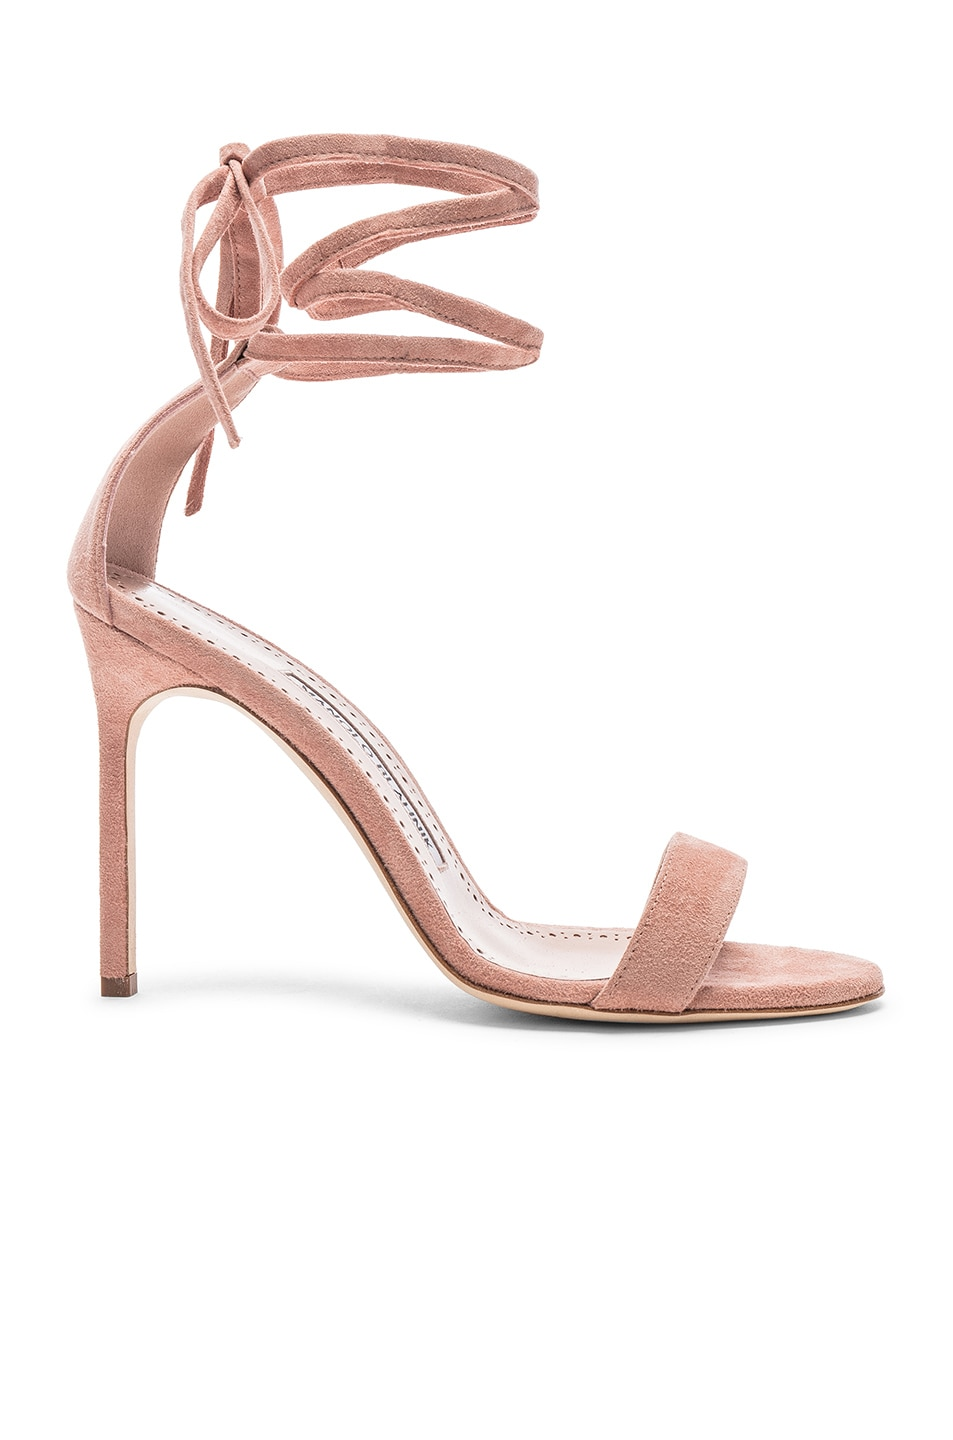 Image 1 of Manolo Blahnik Chaosbow Suede 105 Heel in Canyon Blush